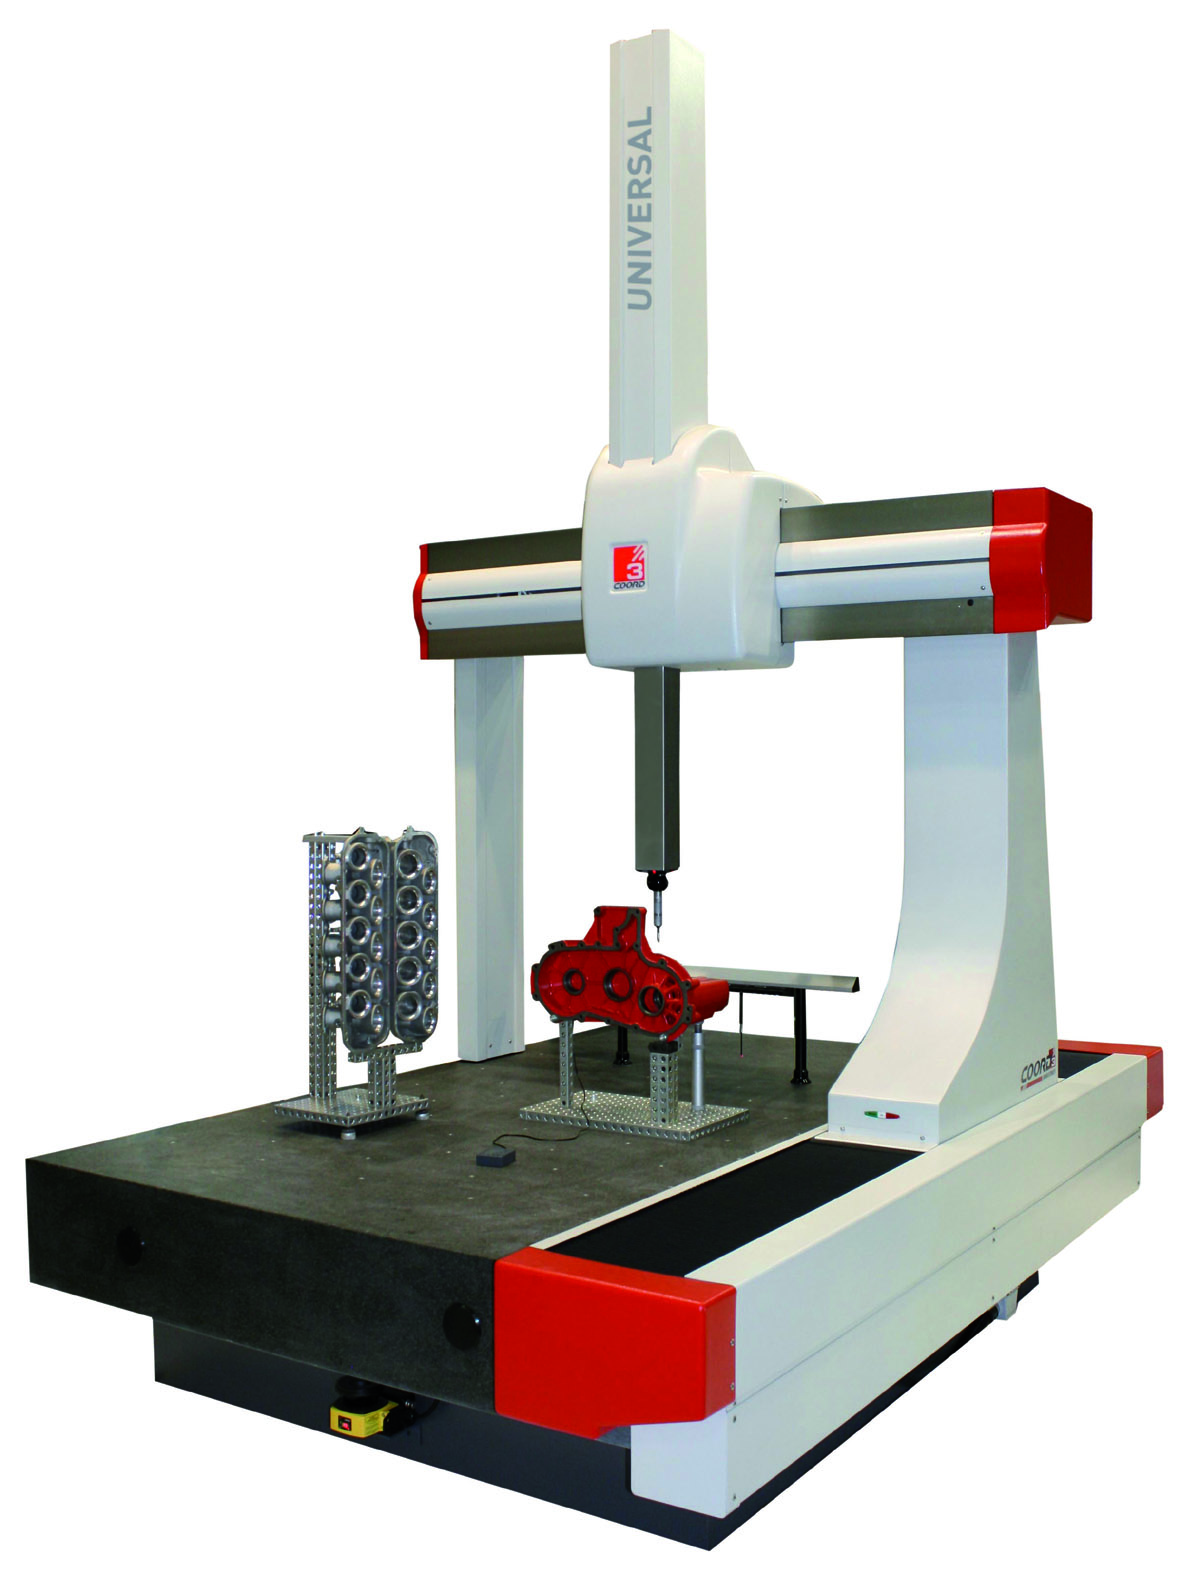 How to Decide Best Coordinate Measuring Machine for Dimensional Inspection